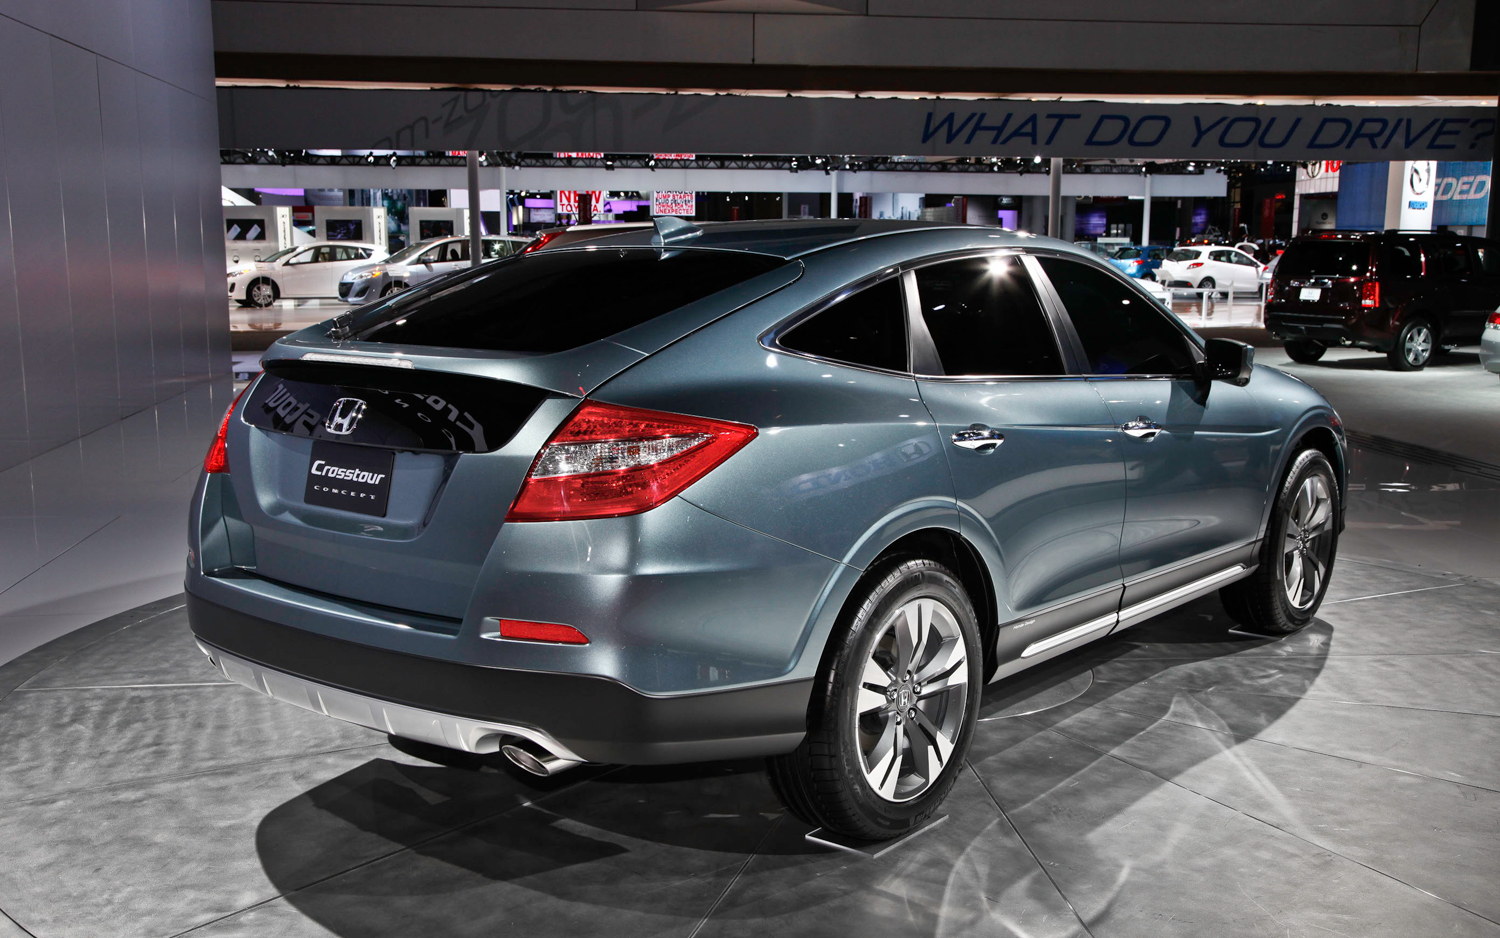 2013 Honda Crosstour Concept photo - 1